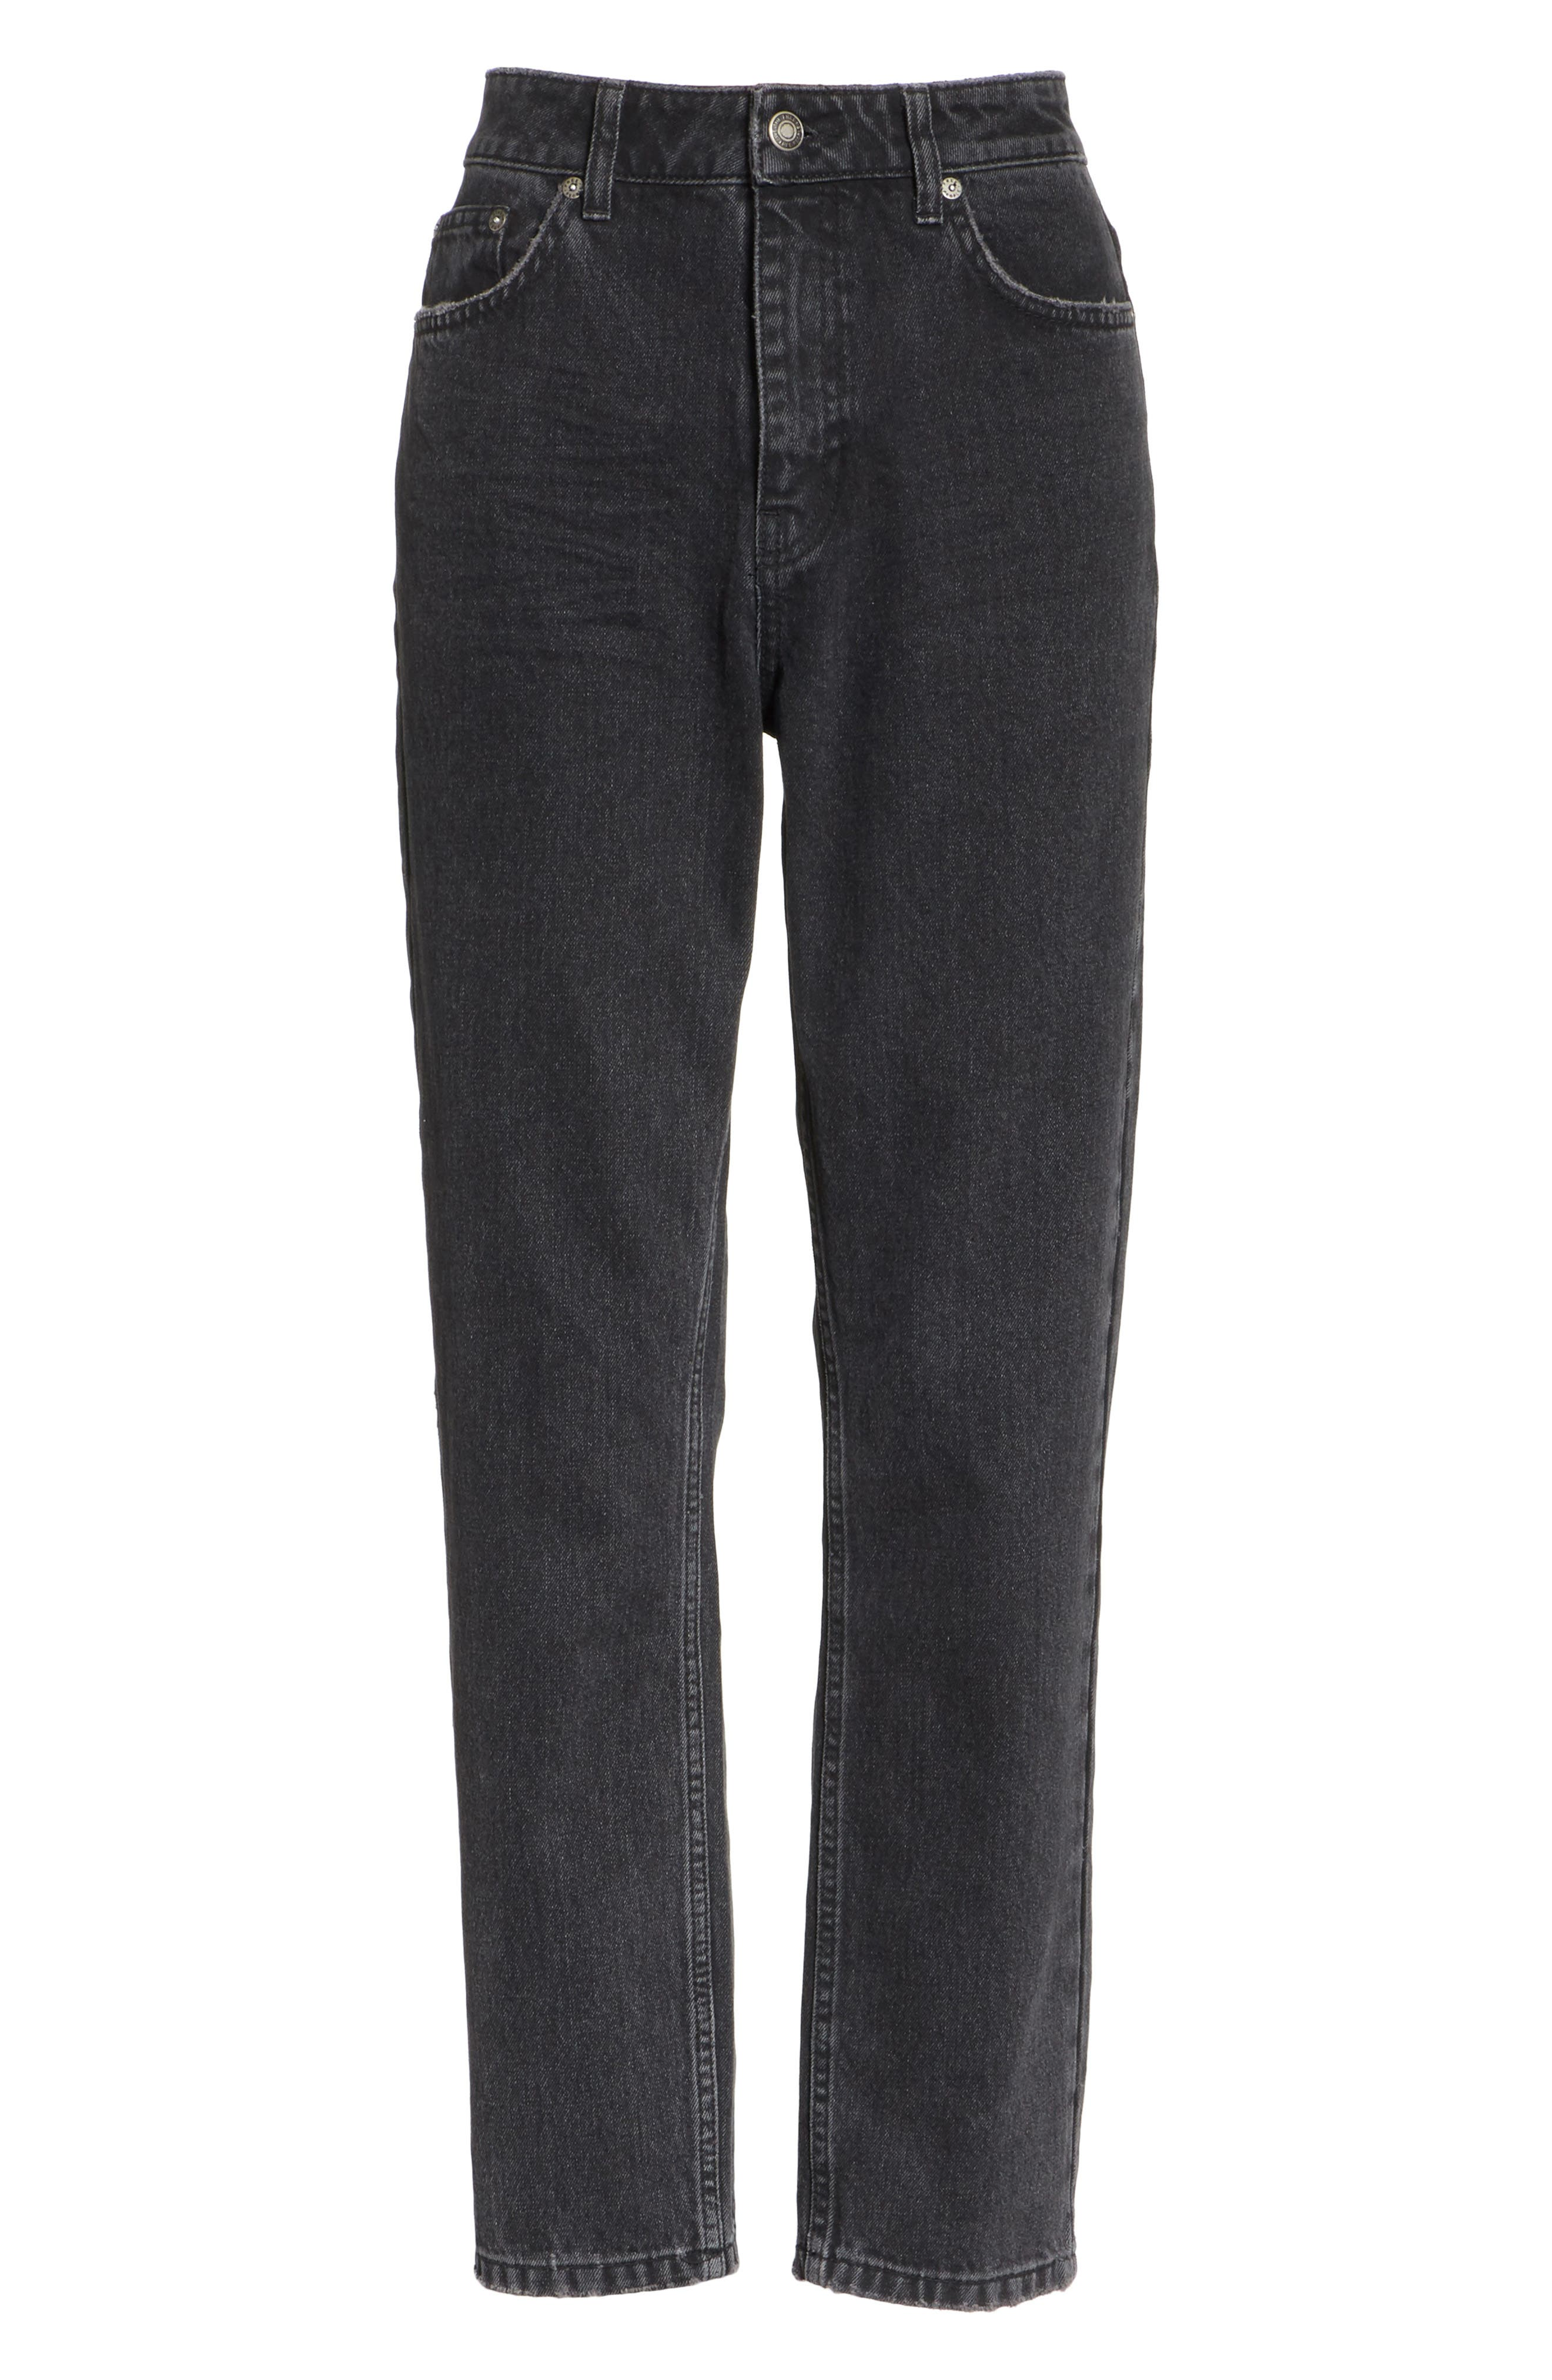 We the Free by Free People Mom Jeans,                             Alternate thumbnail 6, color,                             BLACK